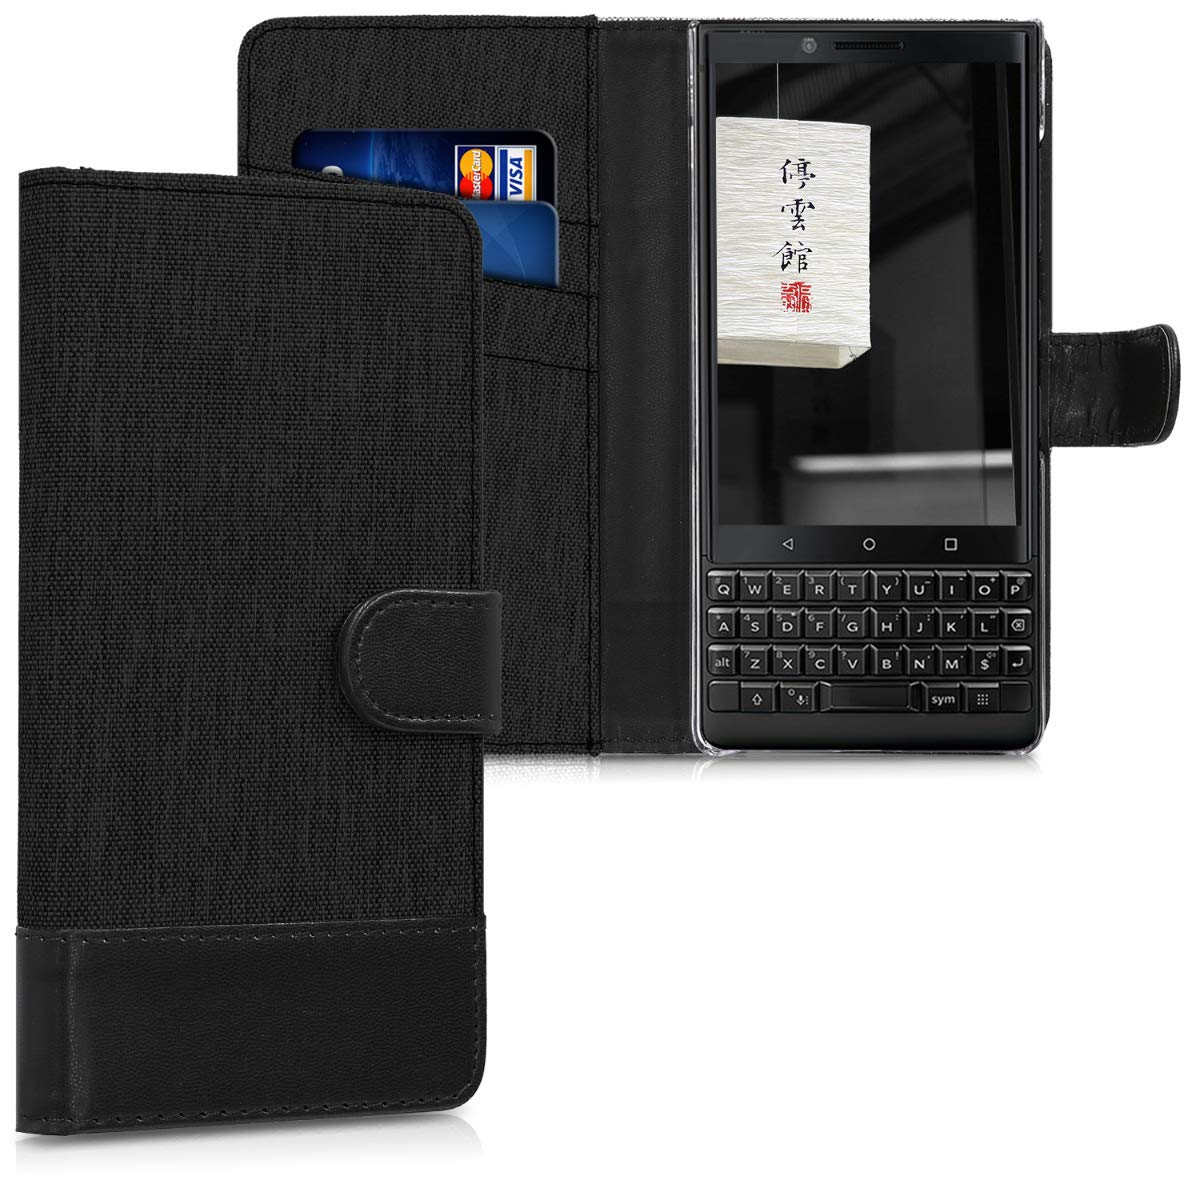 kwmobile Wallet Case for BlackBerry KEYtwo (Key2) - Fabric and PU Leather Flip Cover with Card Slots and Stand - Anthracite Black KW-Commerce 45436.73_m001162